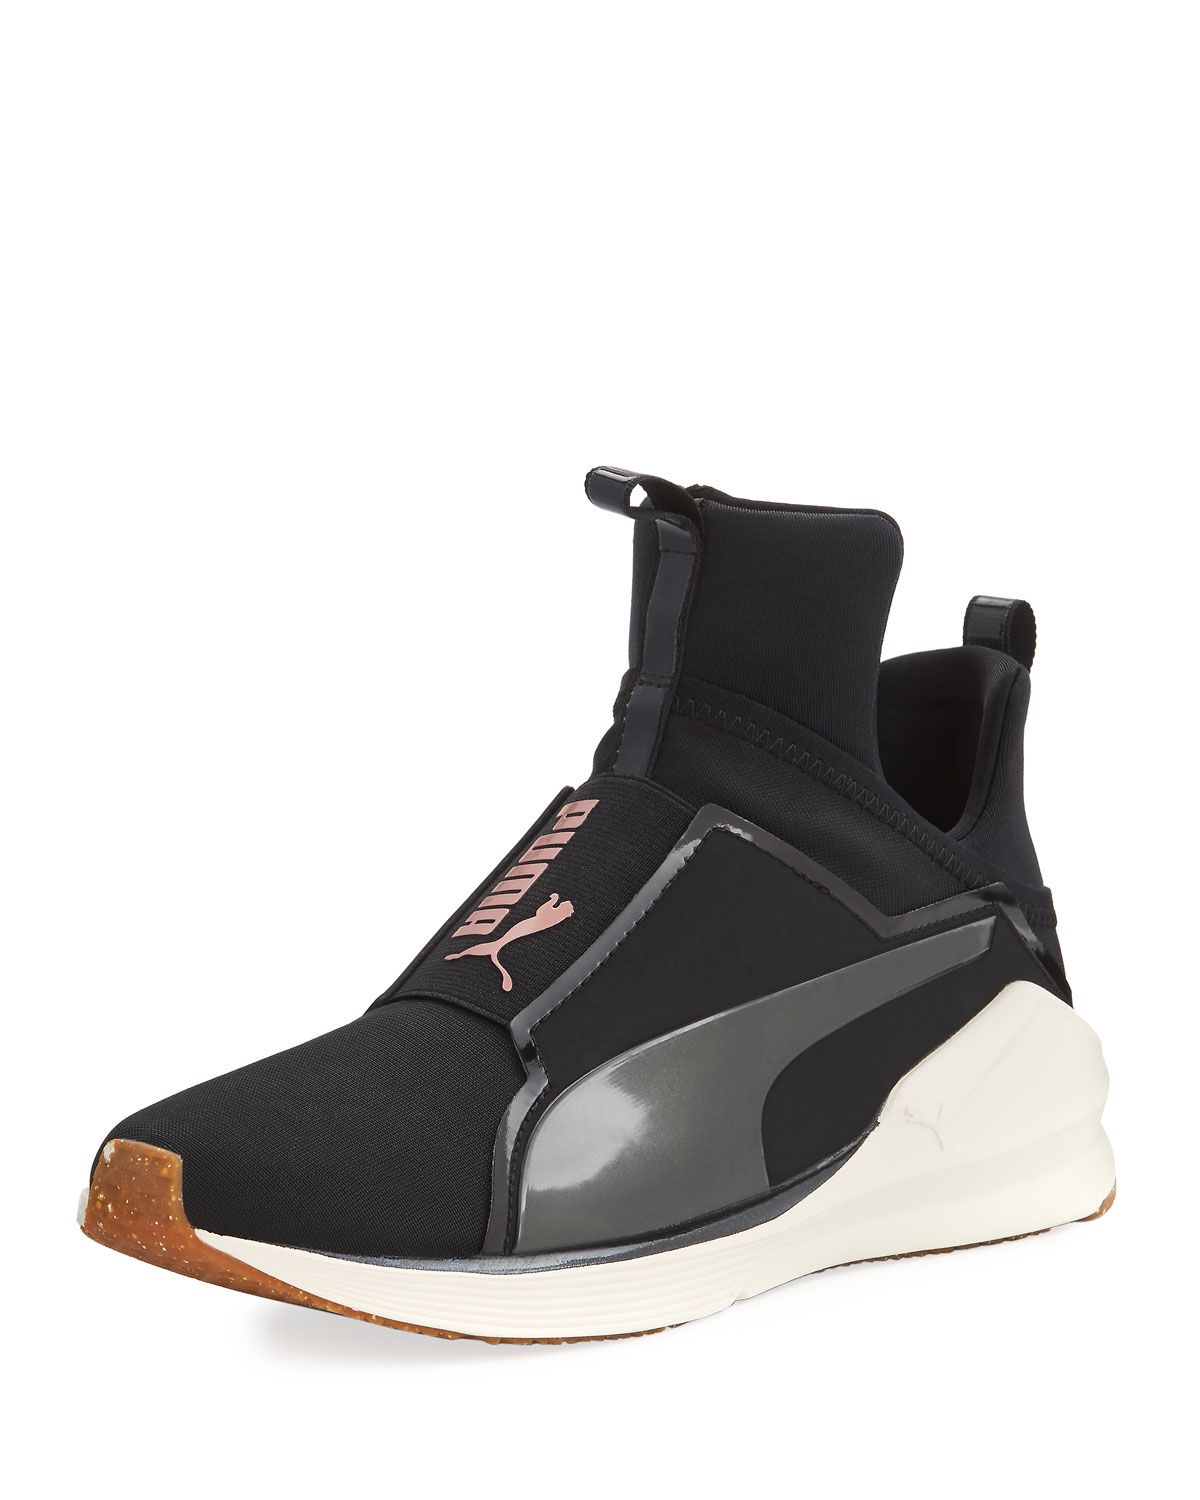 43ff2cc92ae34a Puma Fierce VR Ariaprene High-Top Sneakers